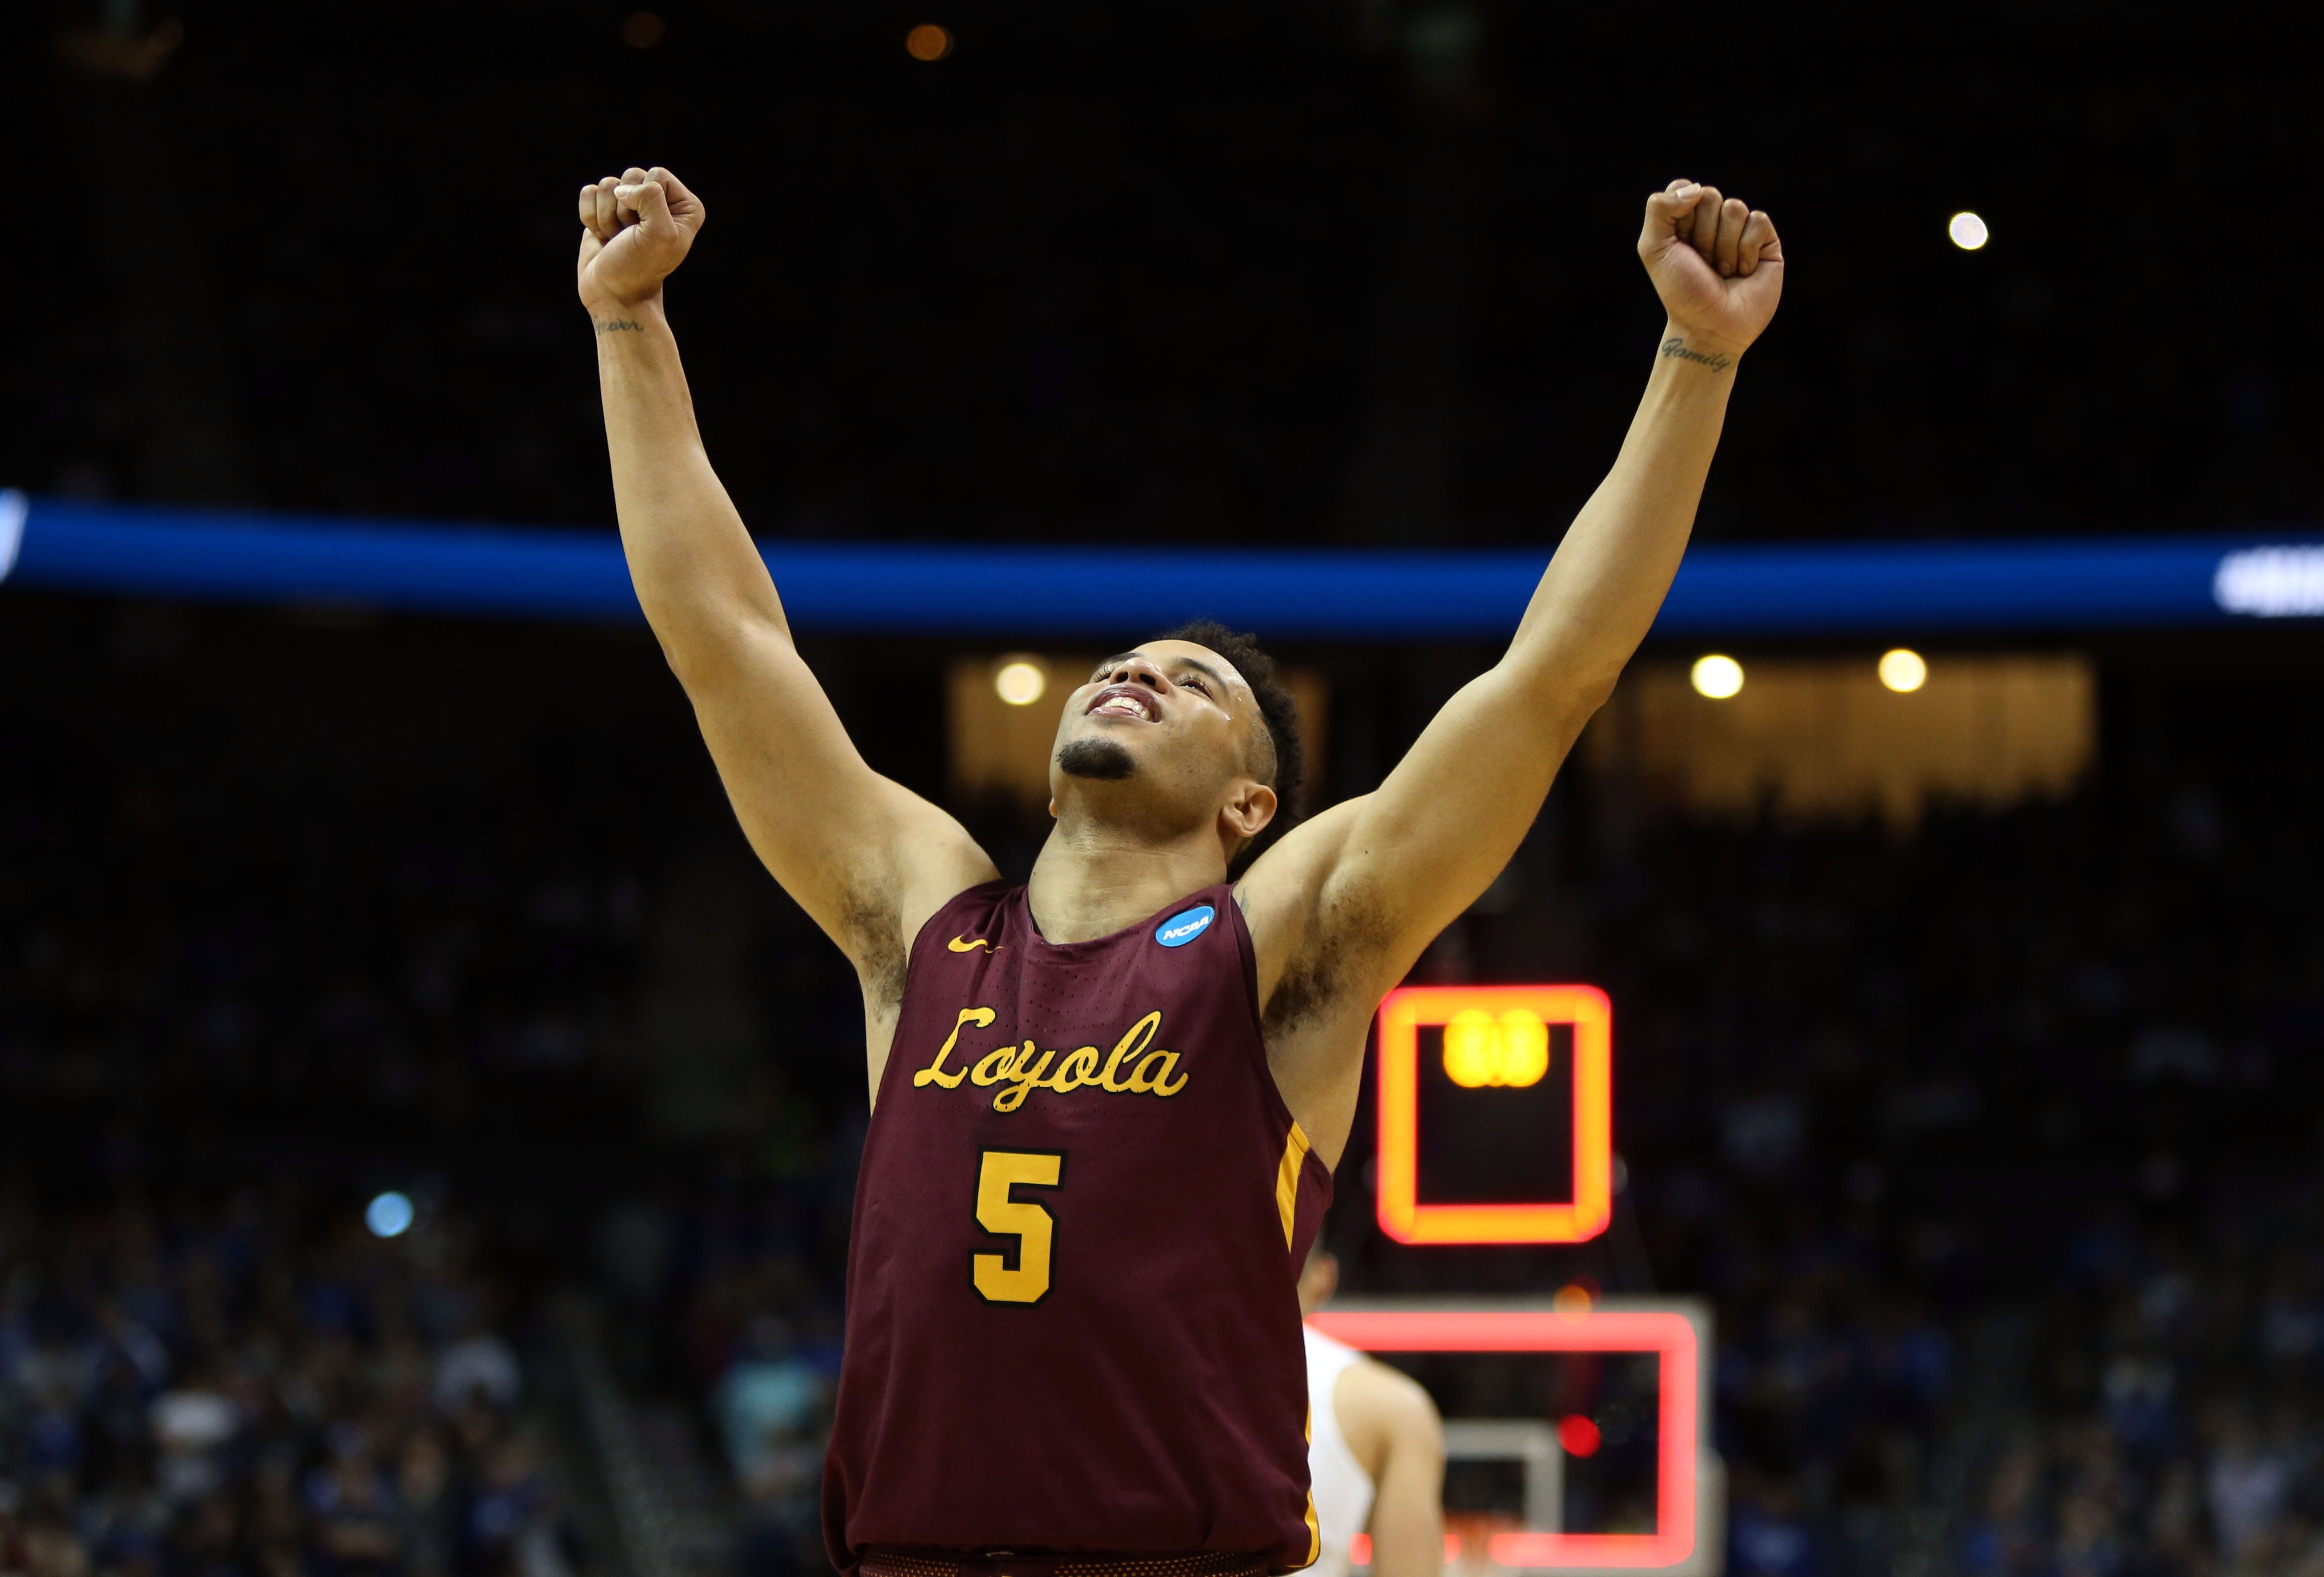 Loyola Ramblers guard Marques Townes celebrates after defeating the Nevada Wolf Pack in the semifinals of the South regional of the 2018 NCAA Tournament at Philips Arena in Atlanta.